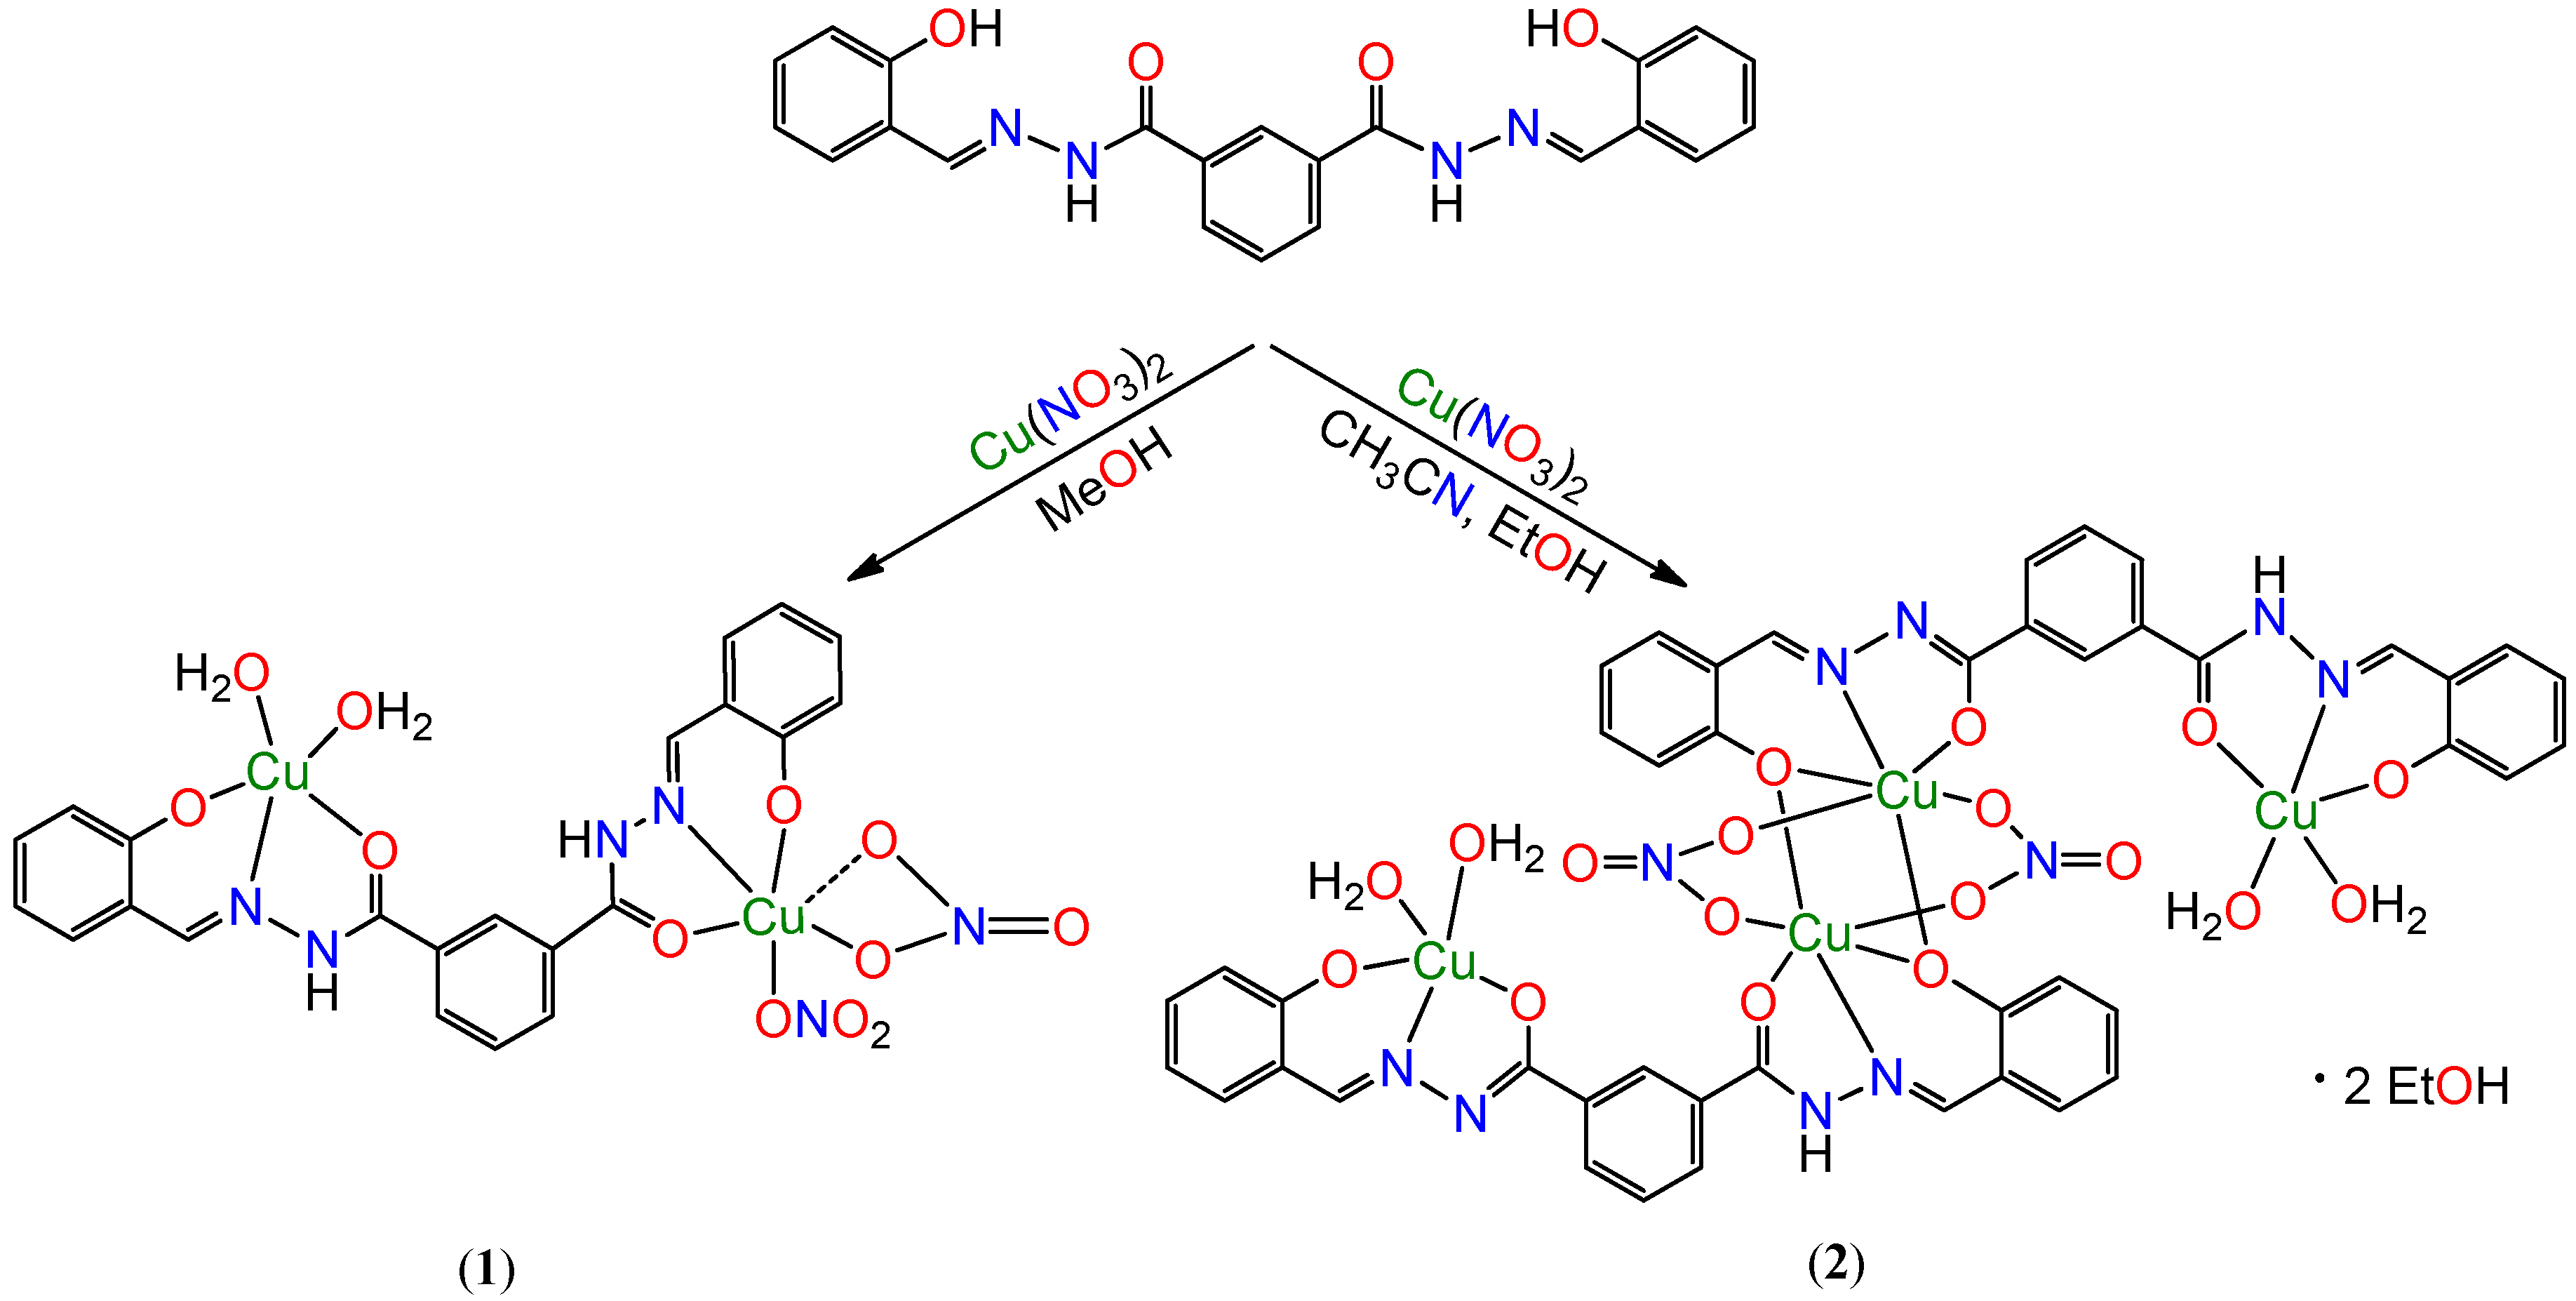 Molecules Free Full Text Peroxidative Oxidation Of Alkanes And Cambridge 302 Wiring Diagram 23 02699 Sch001